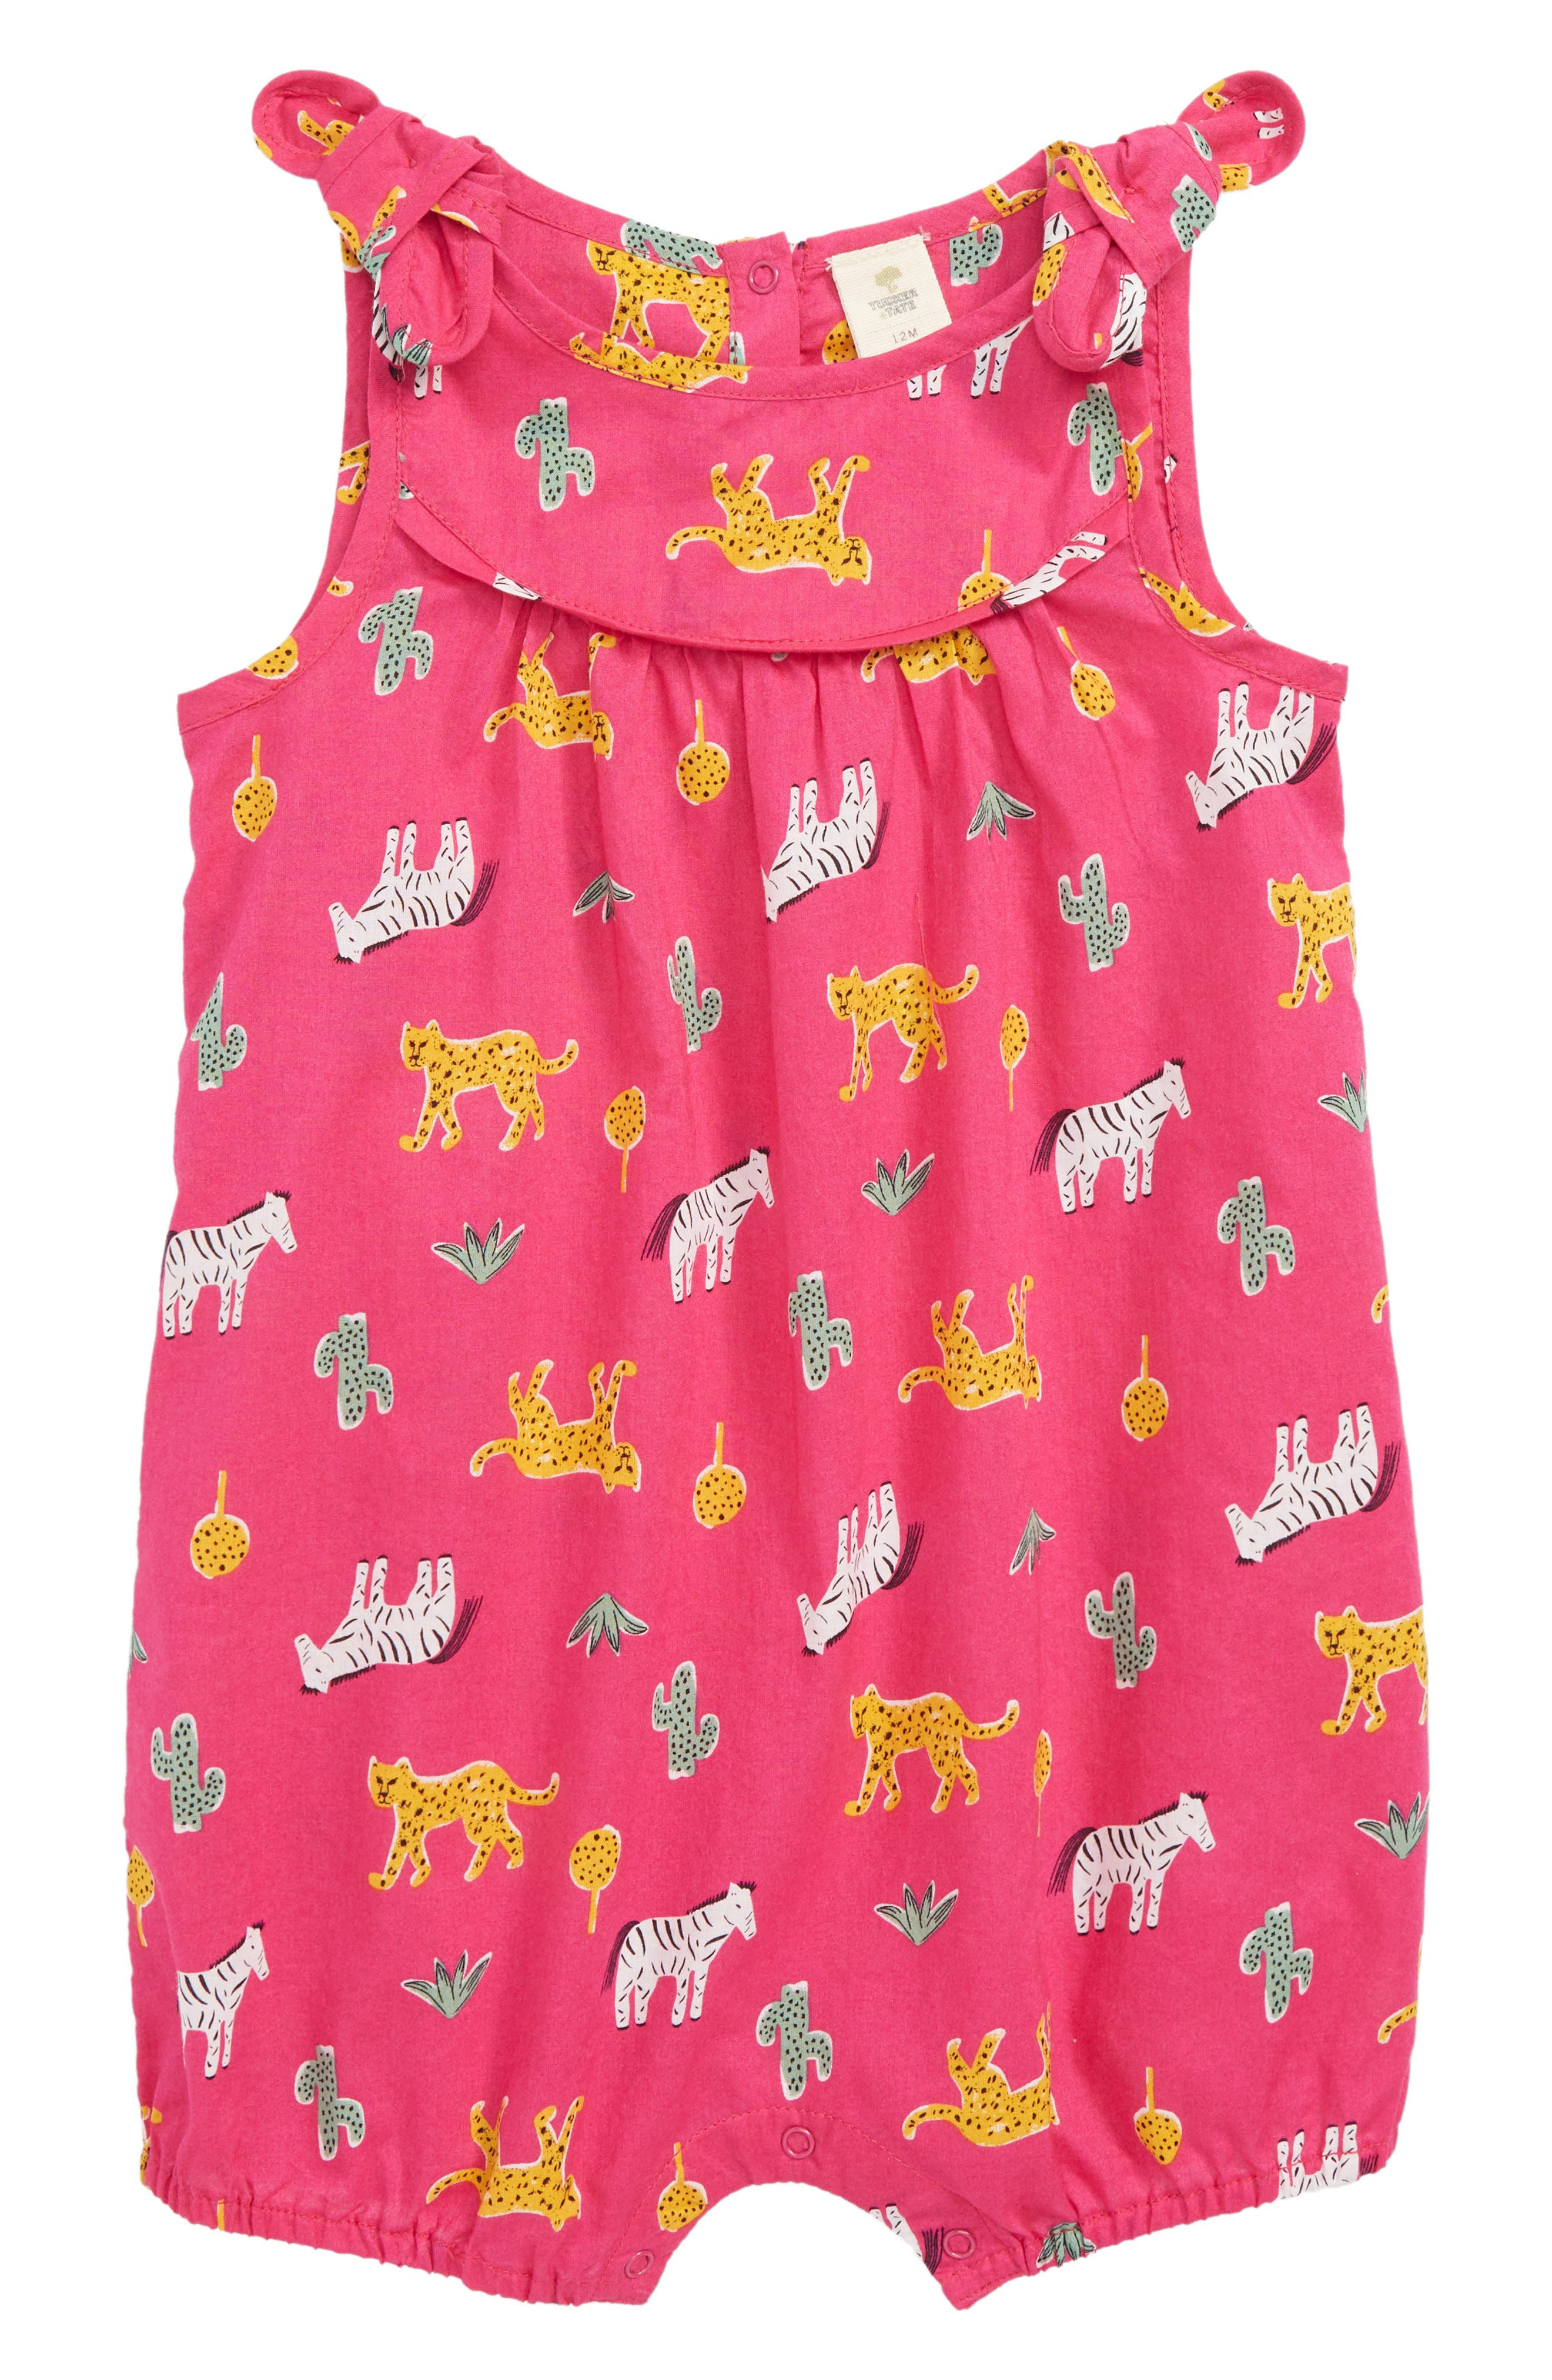 Floral Print Romper,                             Main thumbnail 1, color,                             PINK BERRY SAFARI